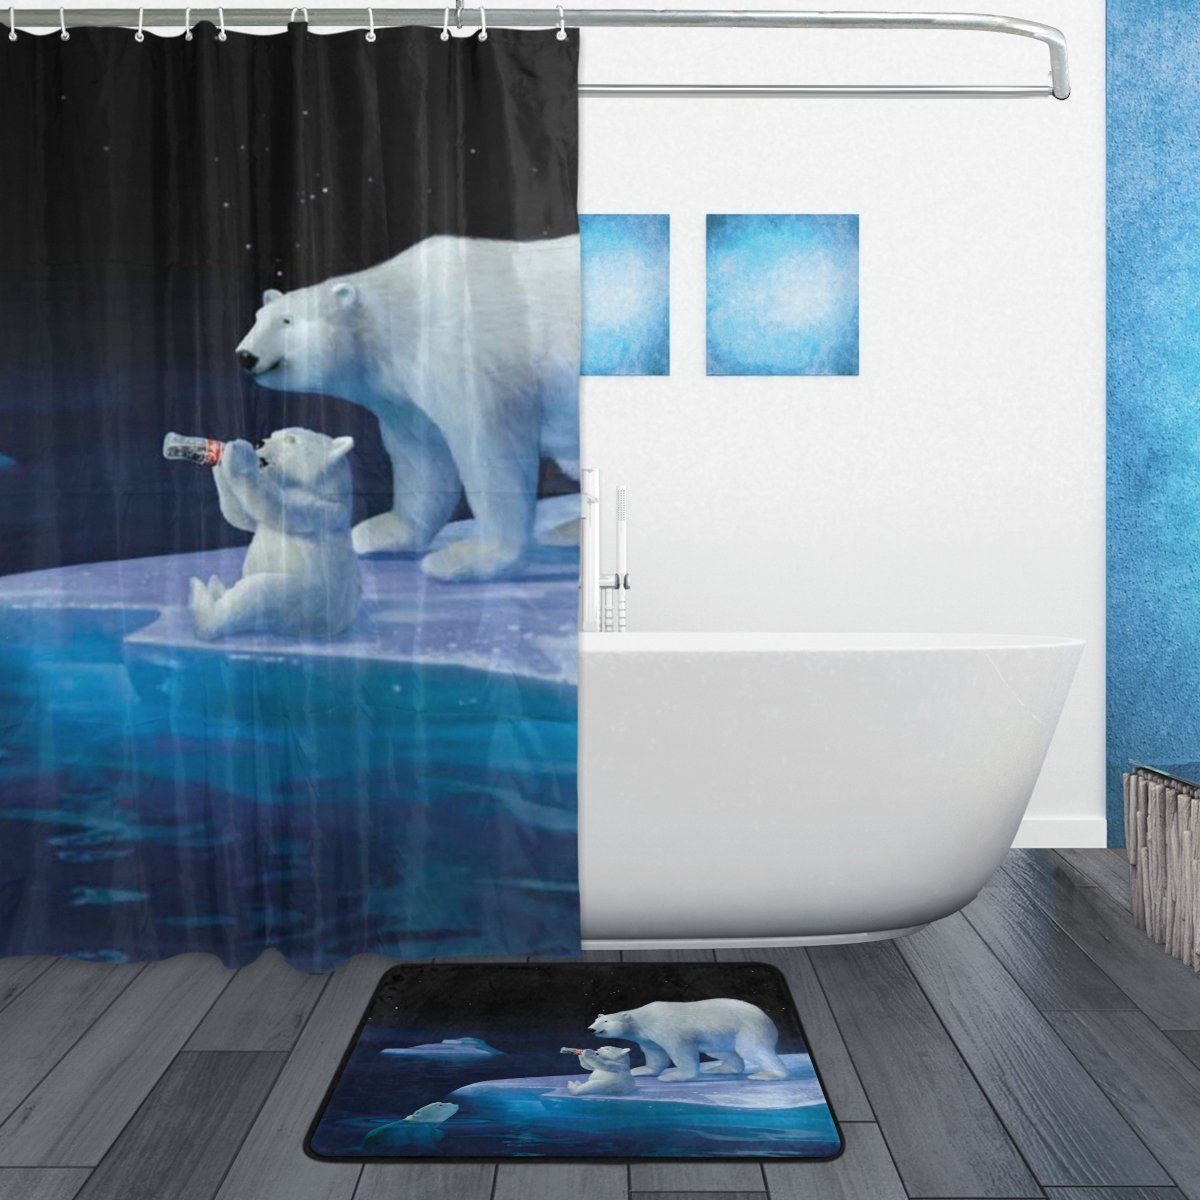 Amazon.com: YOHHOY Set of 2 60 X 72 Inches Shower Curtain and Mat ...